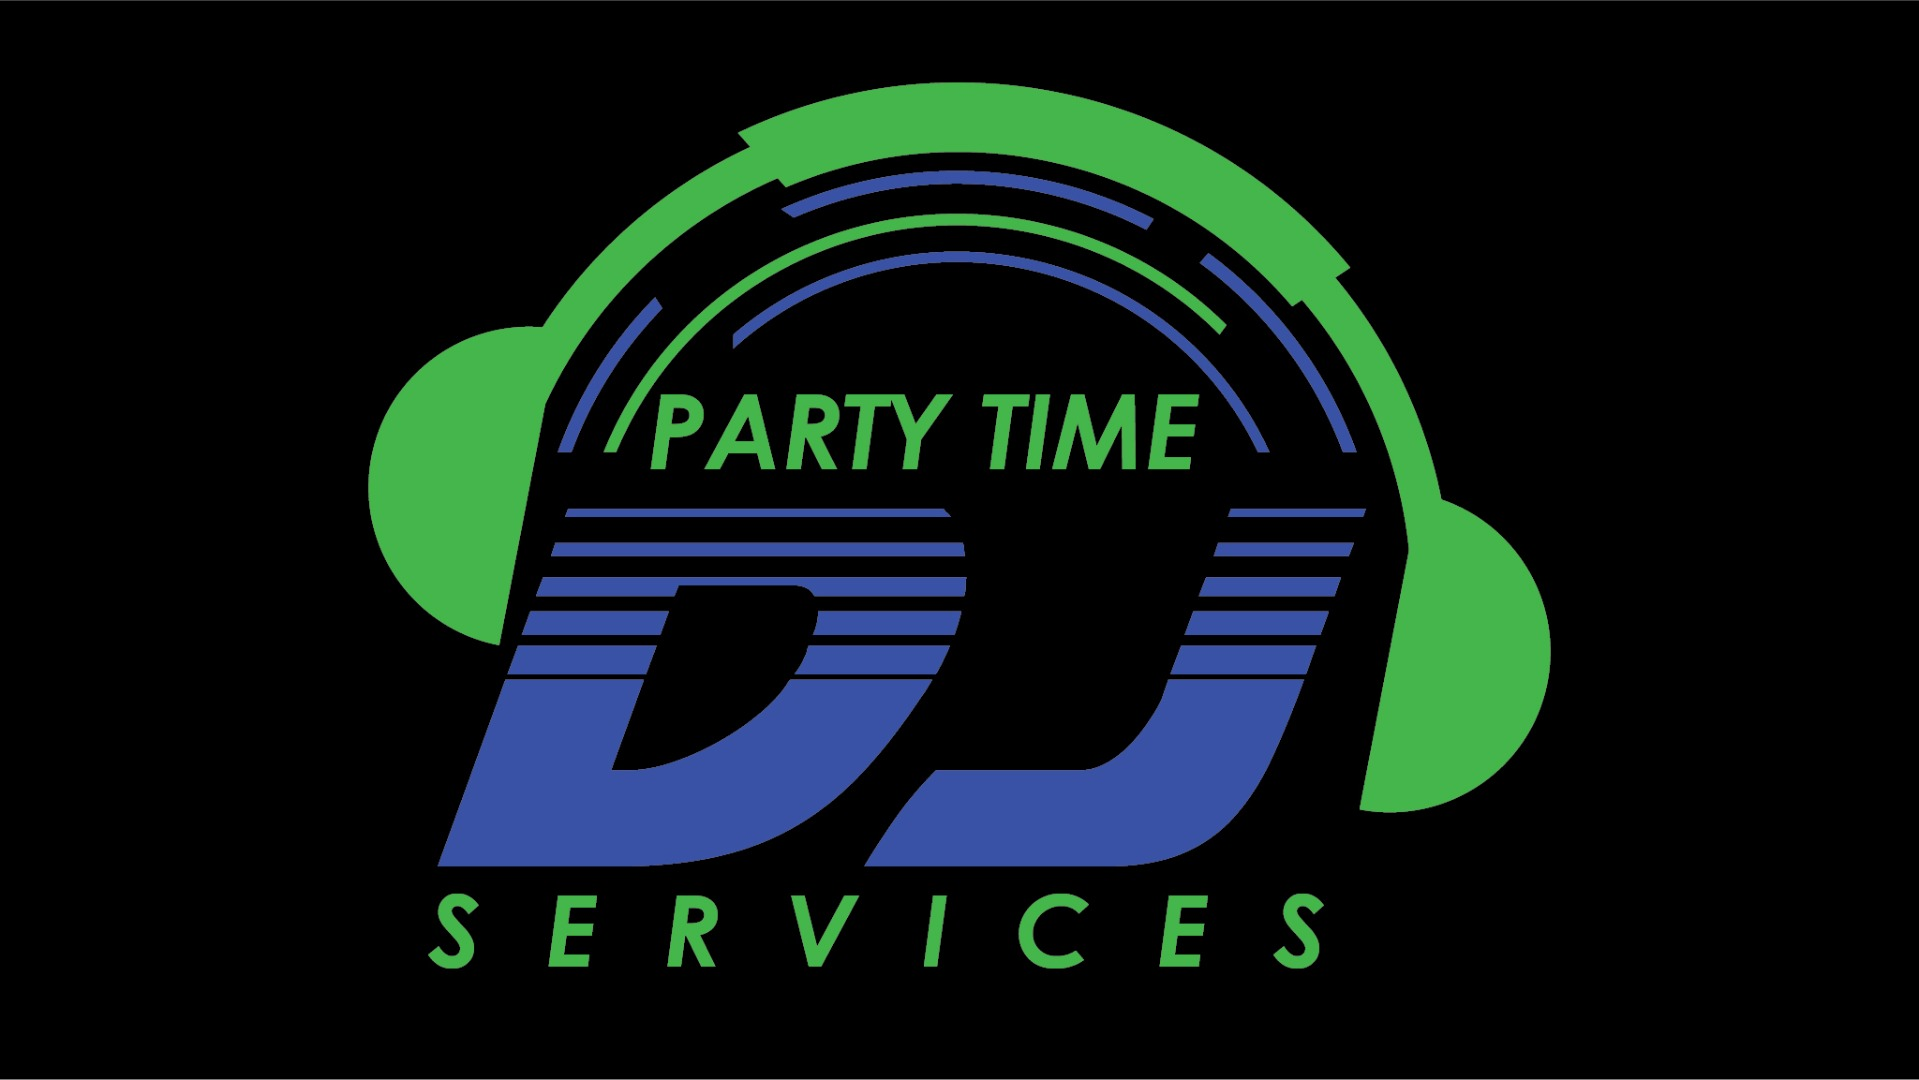 Party Time Dj Services Promo Slide Show